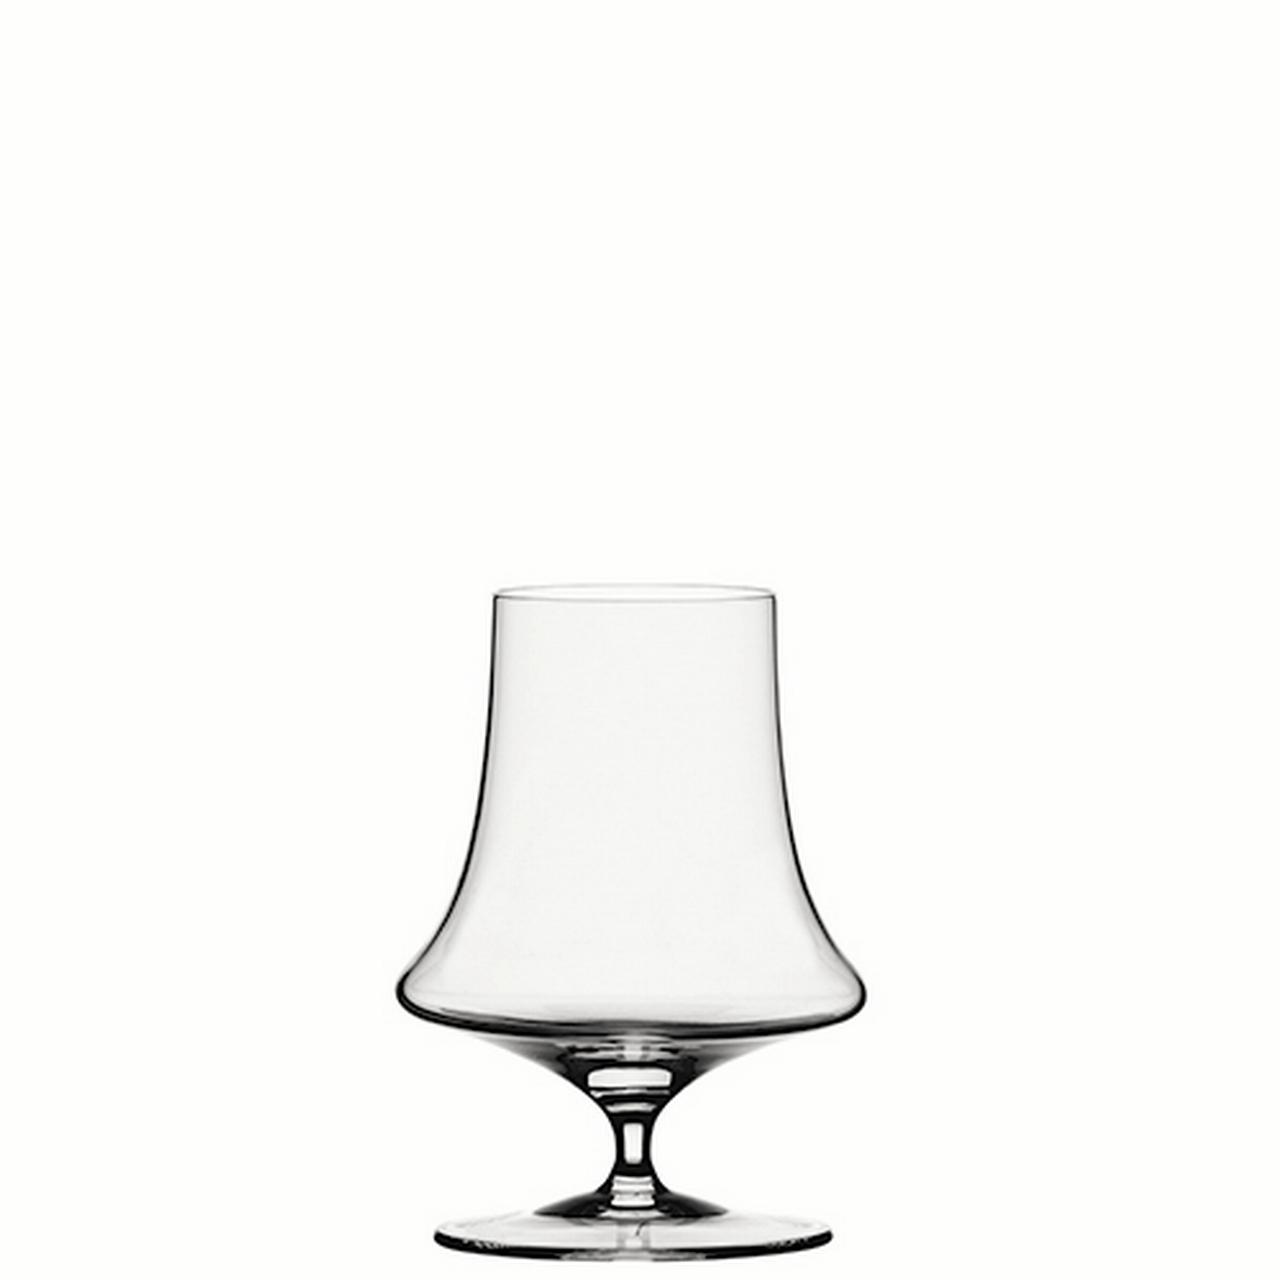 Spiegelau Willsberger 22.4 oz Bordeaux Glass (Set of 4) by Spiegelau